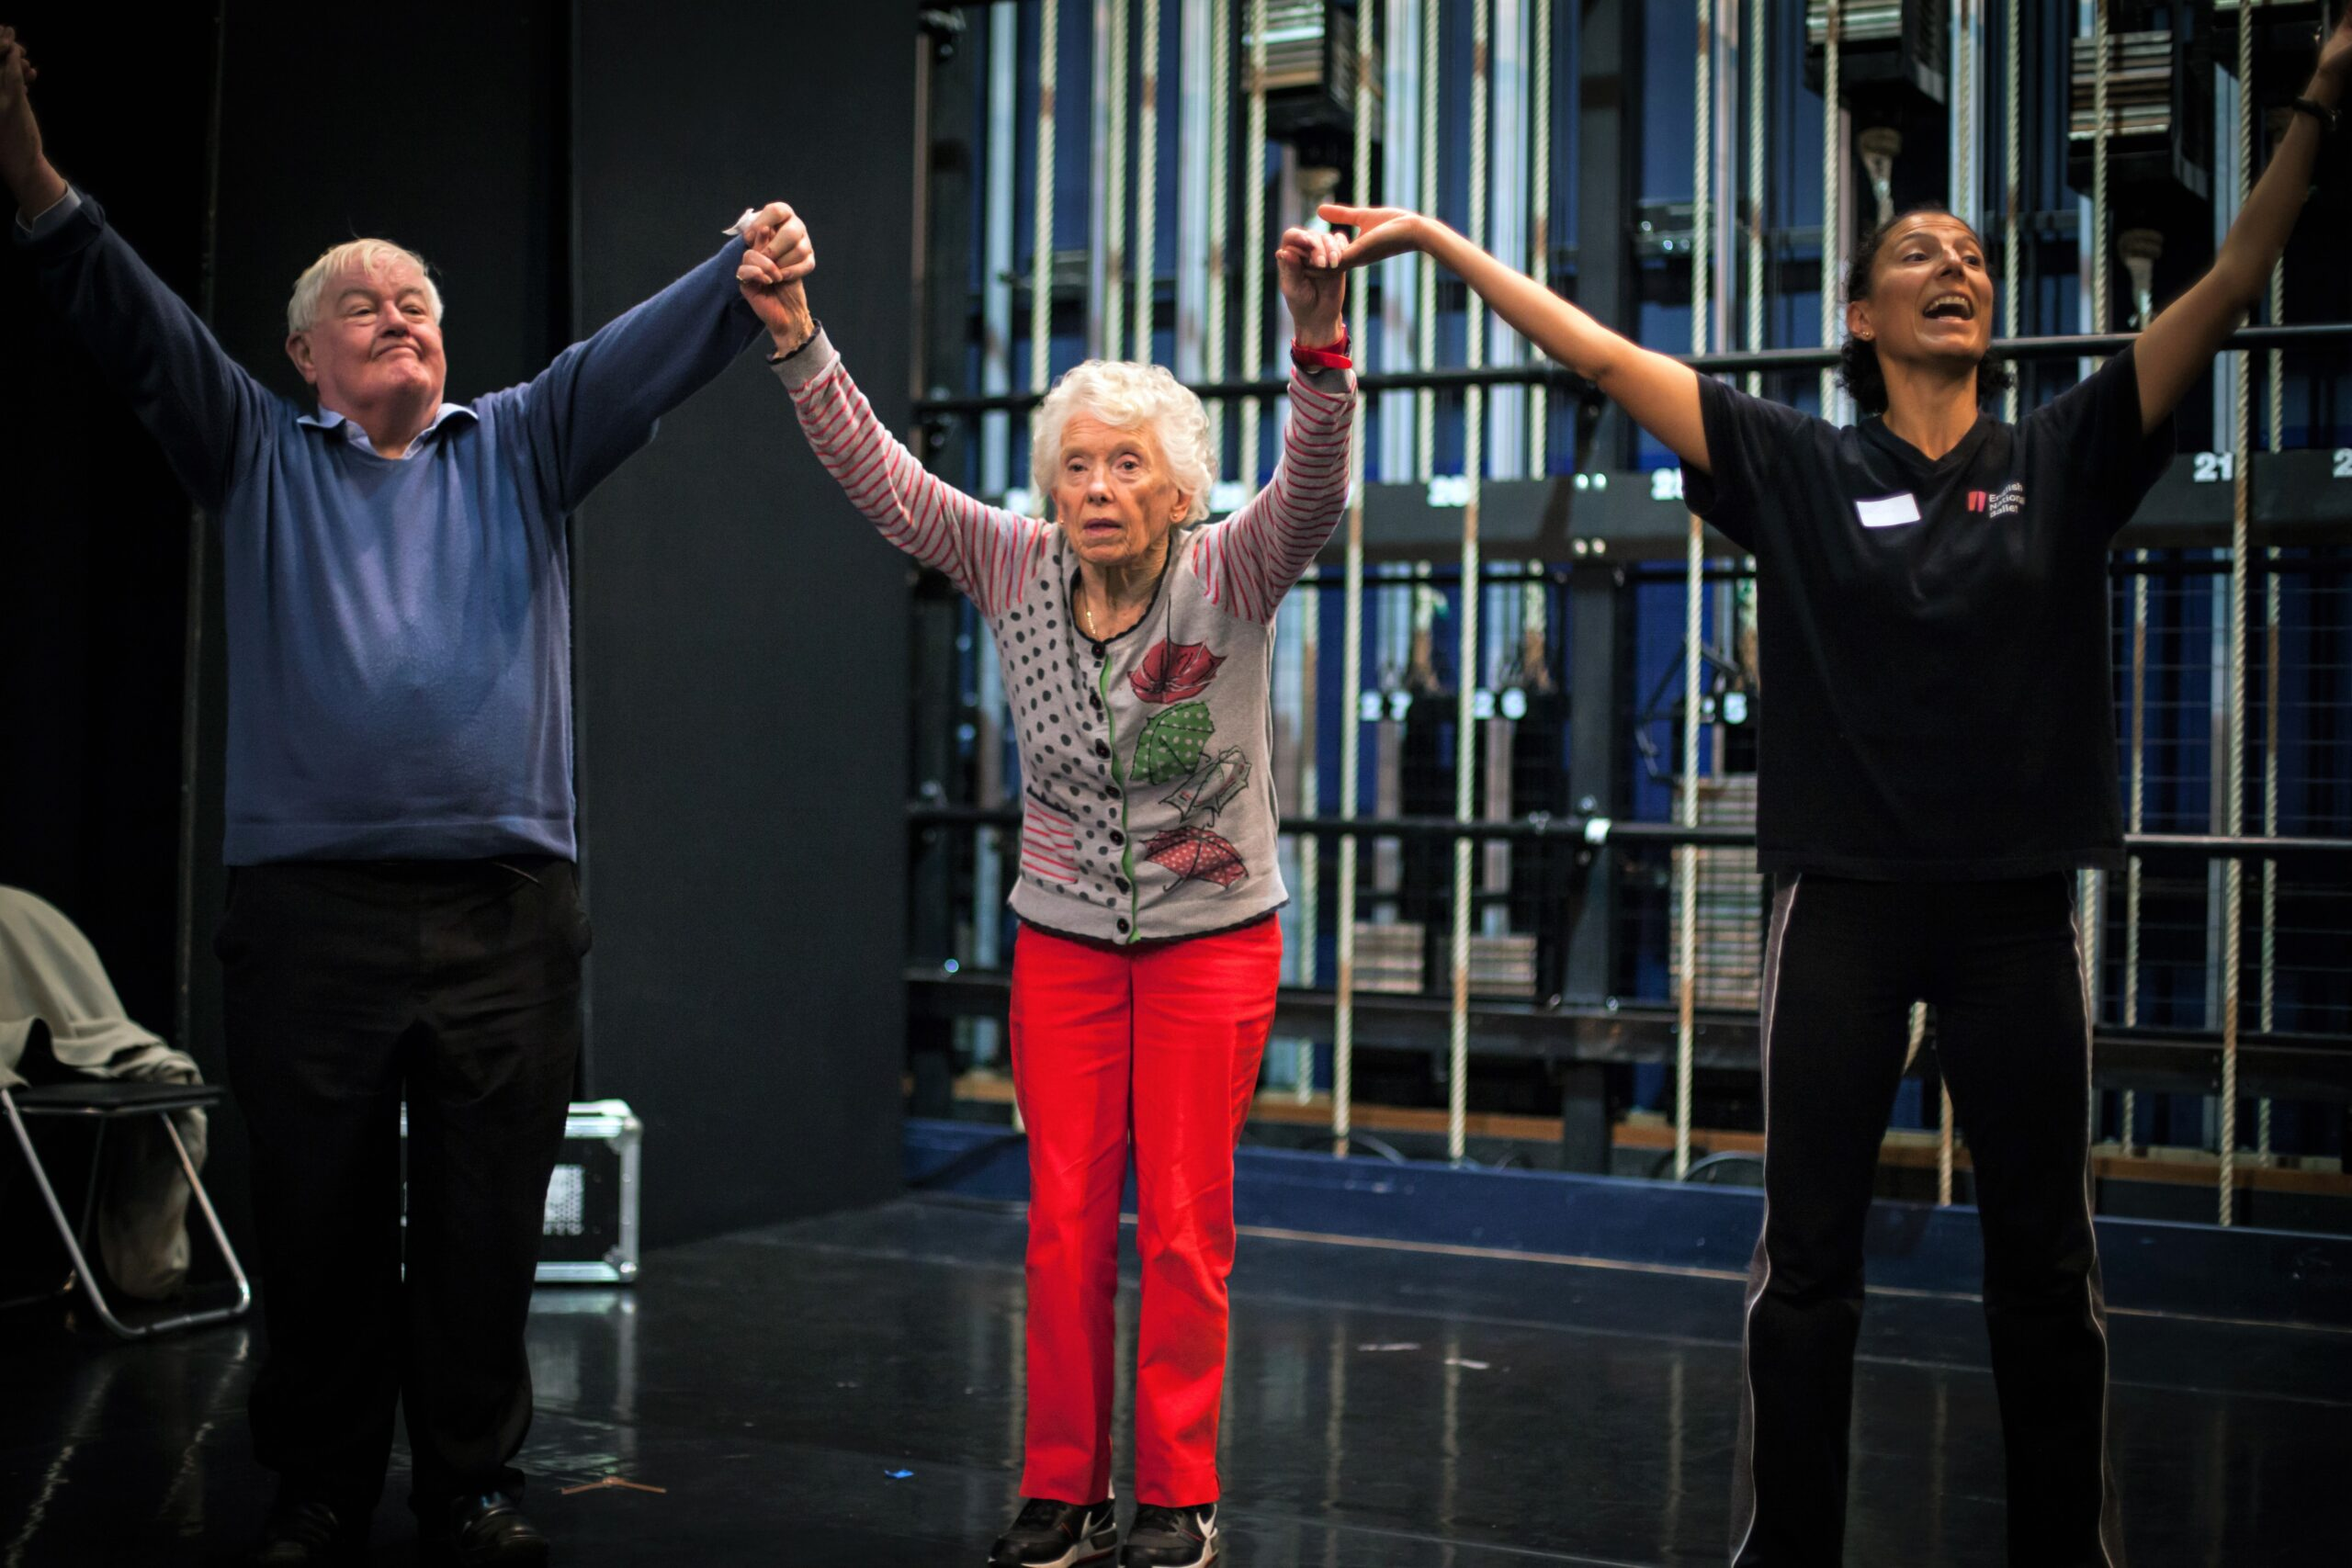 Coleg Cambria will pilot dance programme for people living with Parkinson's